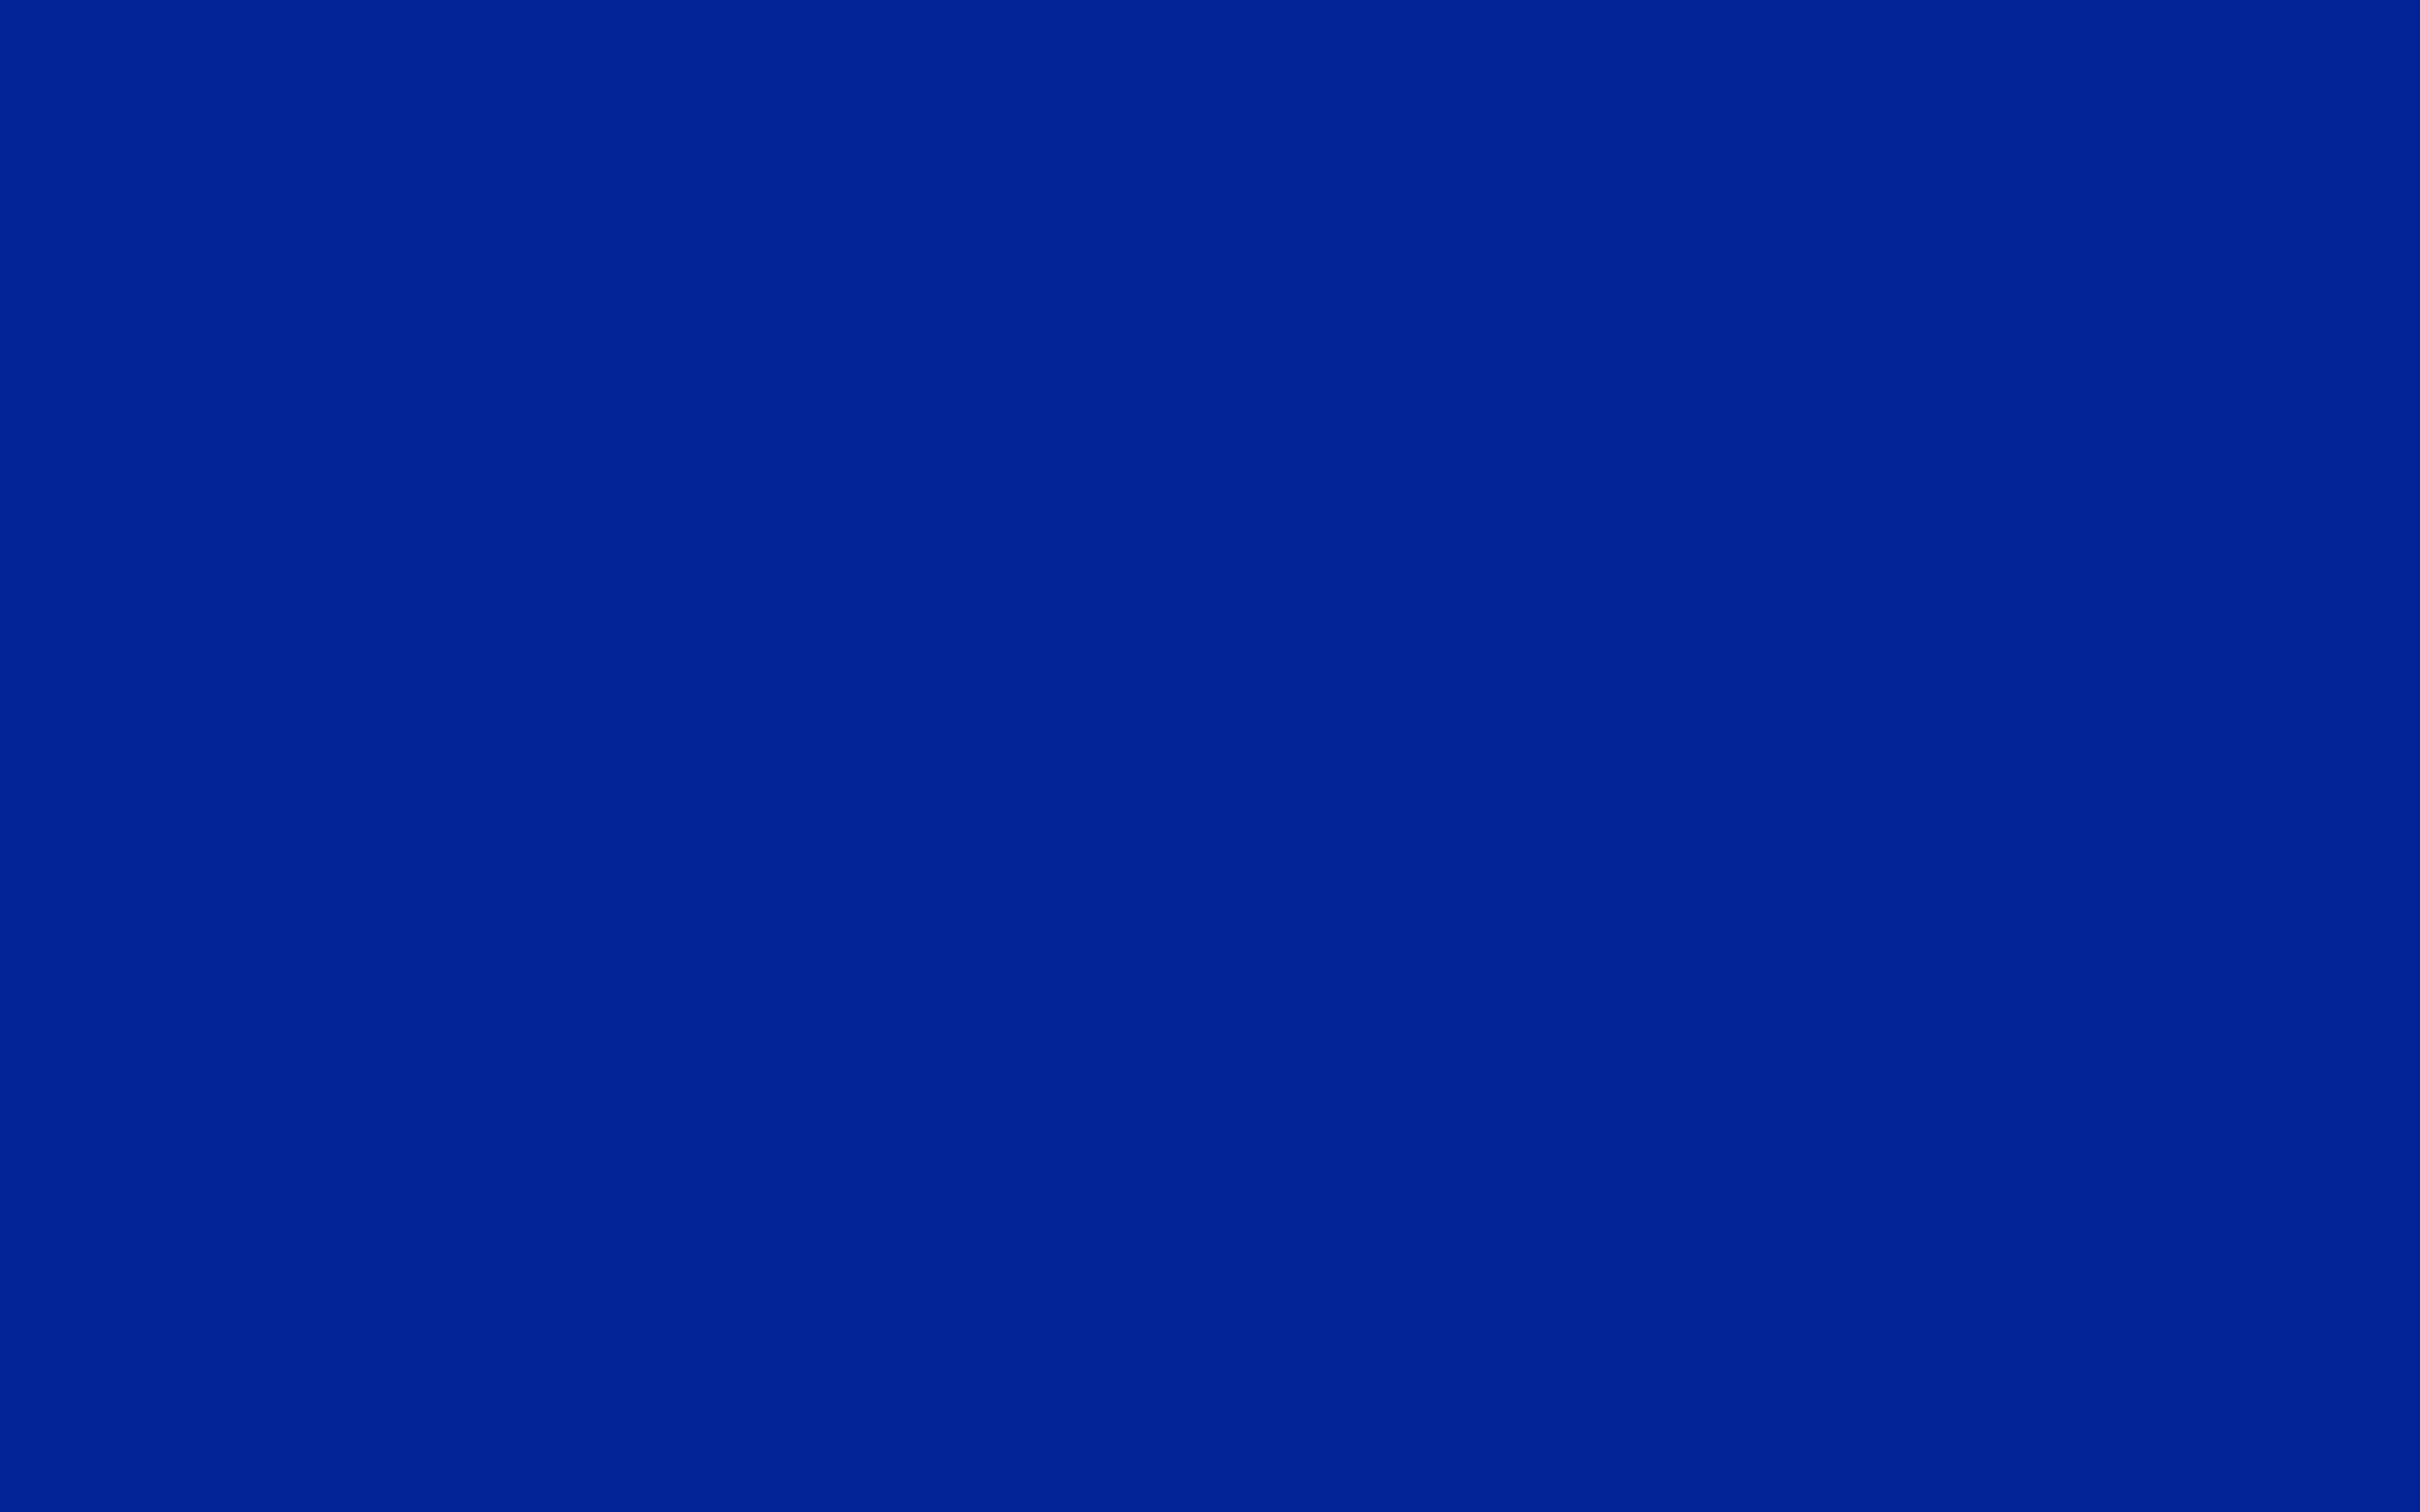 2560x1600 Imperial Blue Solid Color Background